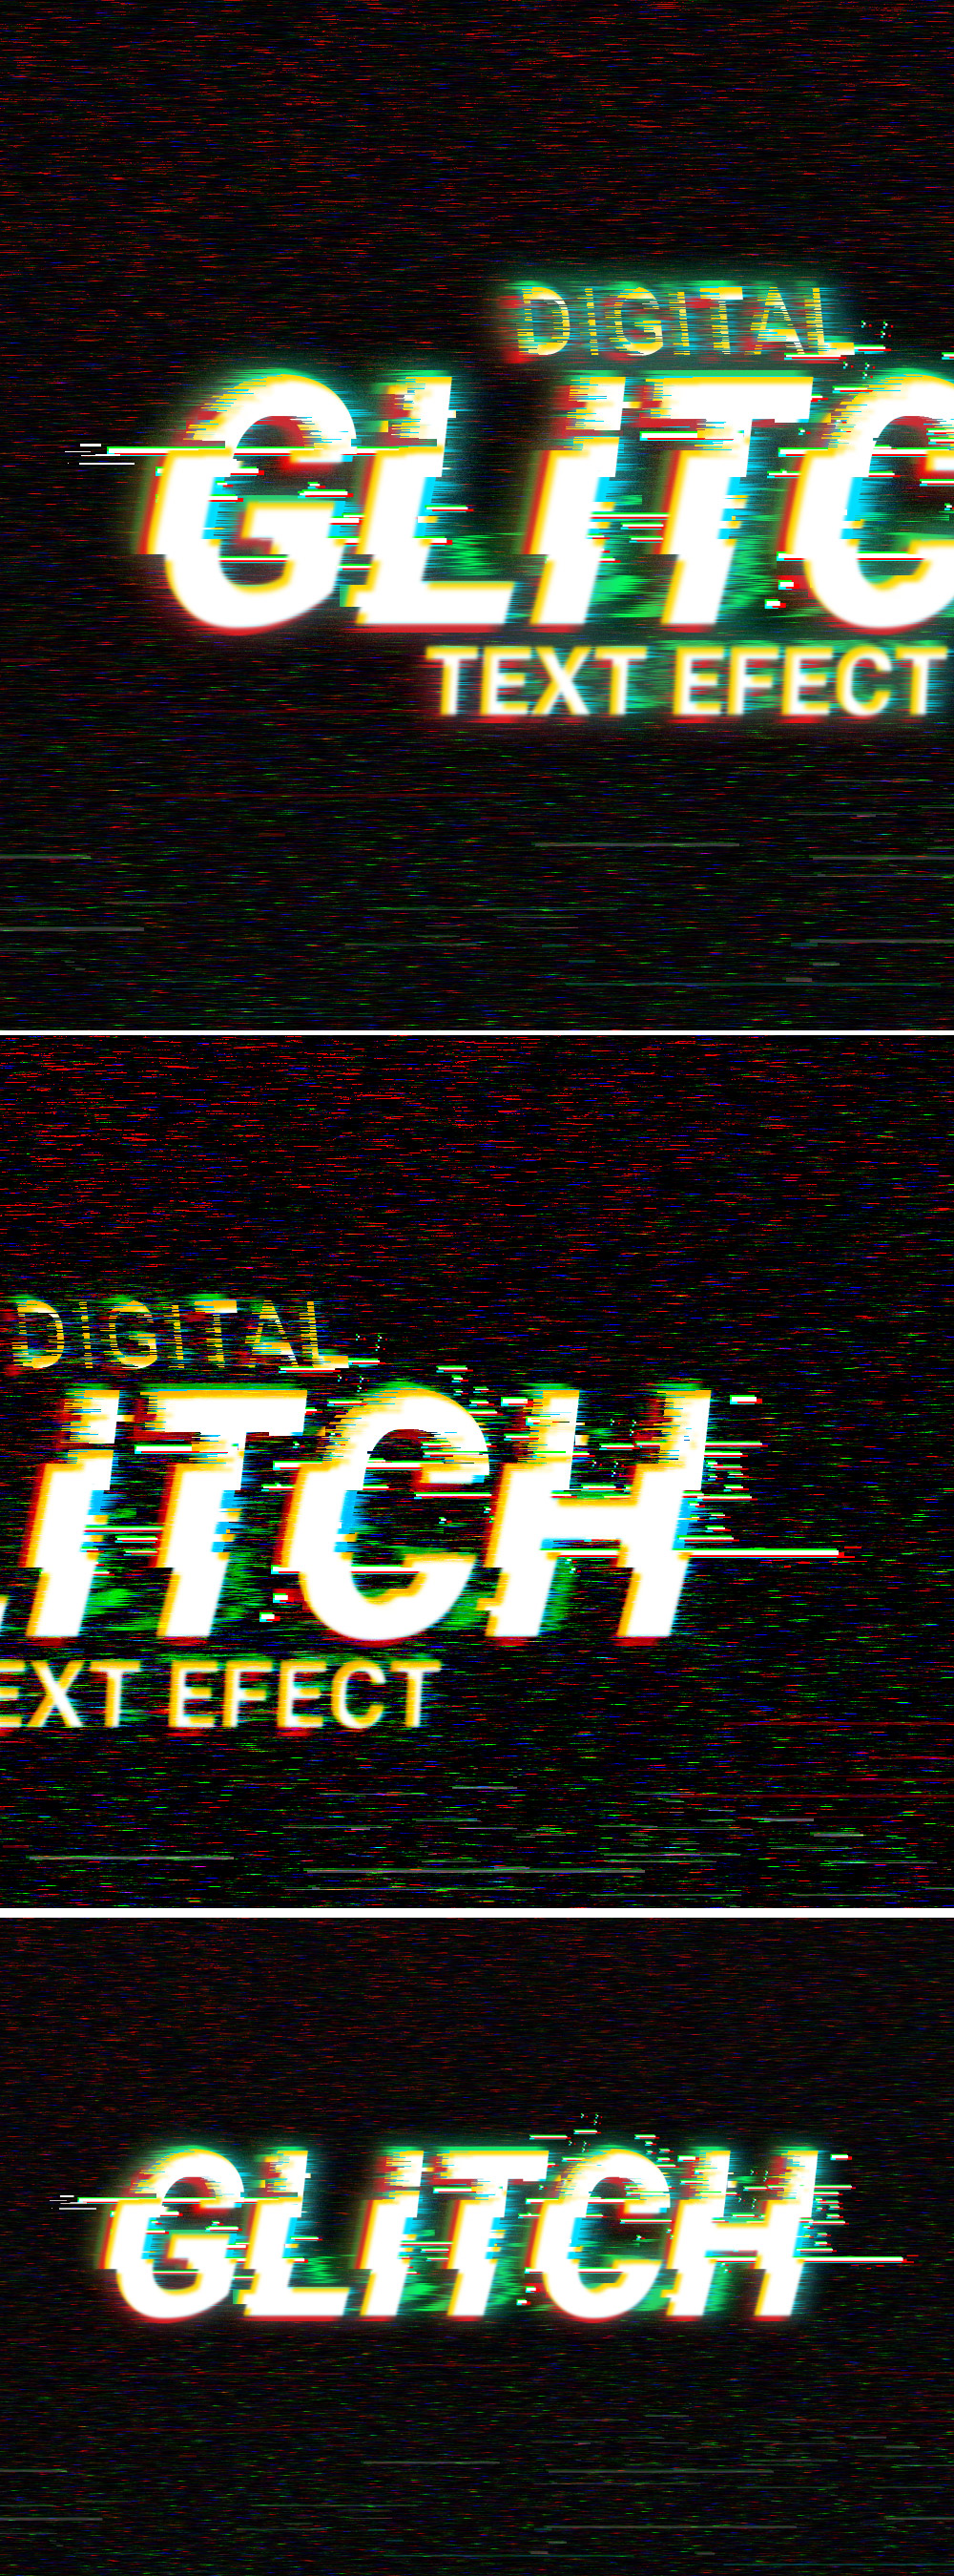 how to get glitchy text